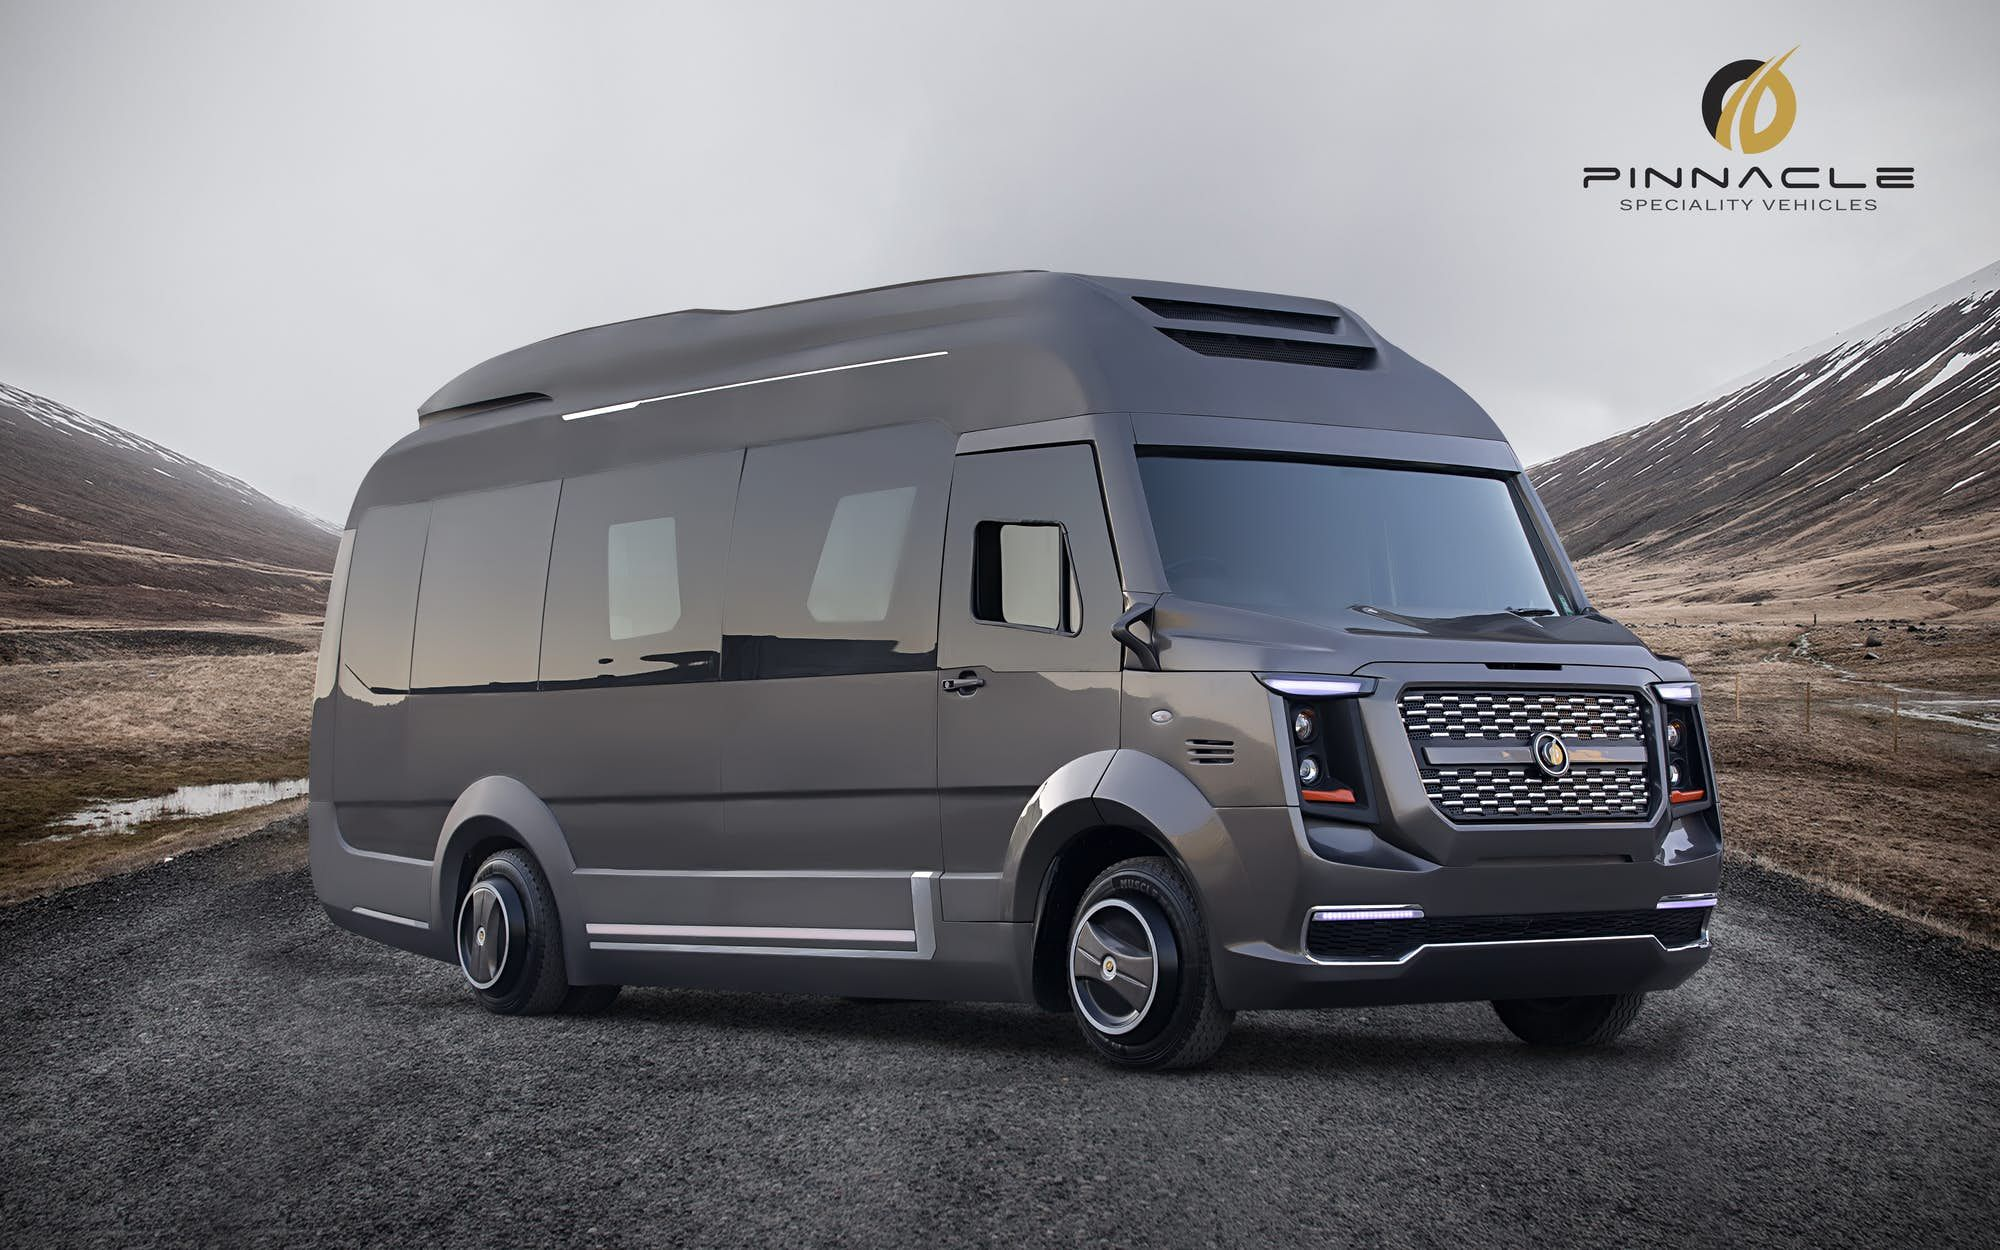 027e98662c Pinnacle debuted its new camper at Auto Expo in February